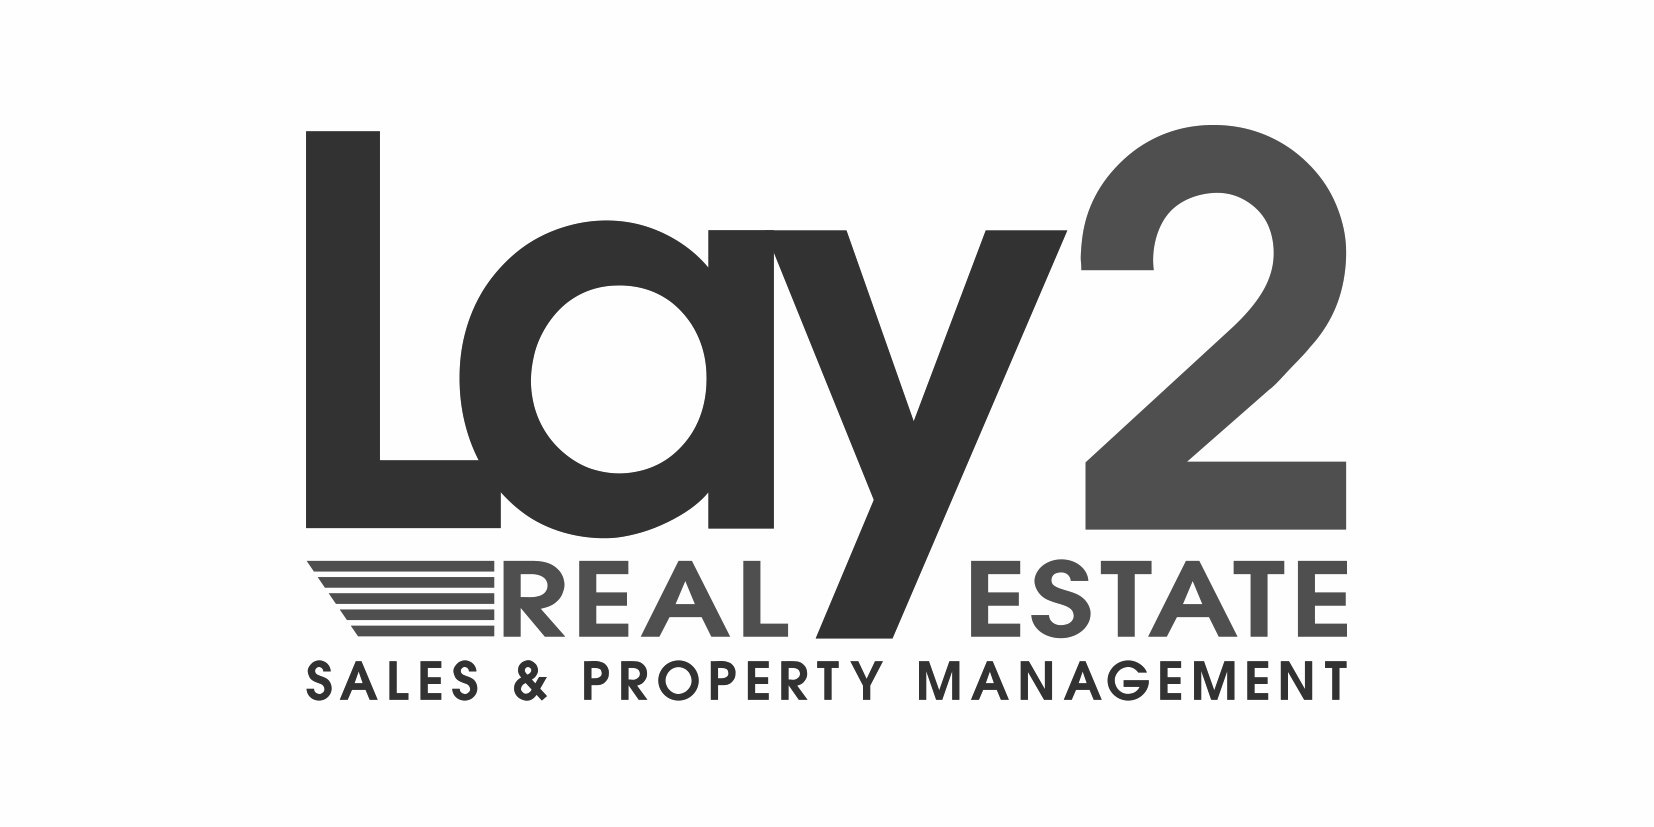 Lay2 Real Estate